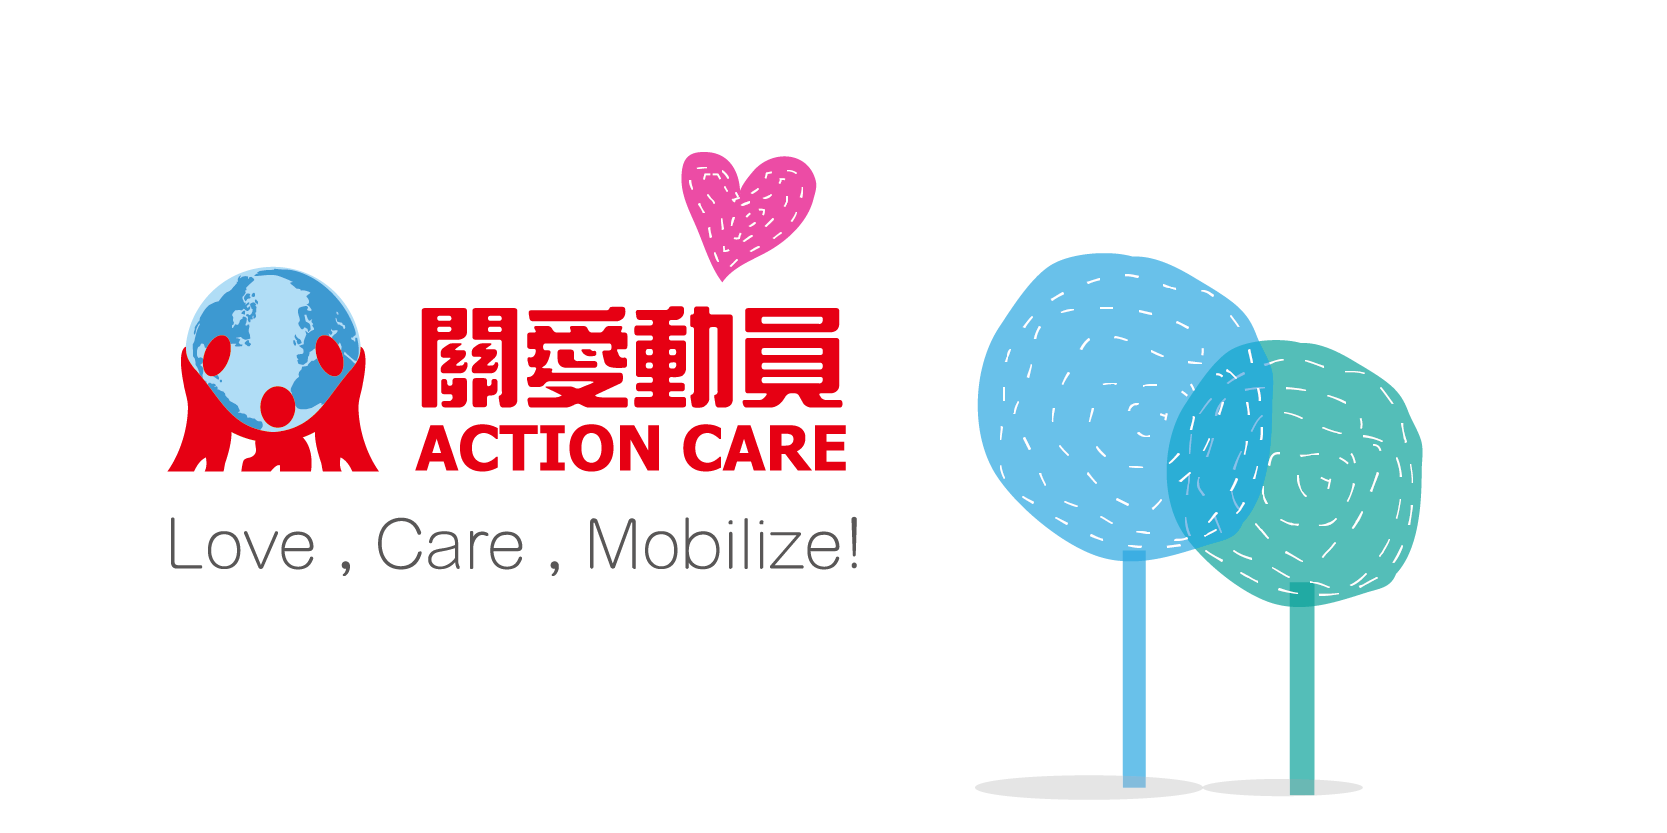 Action Care